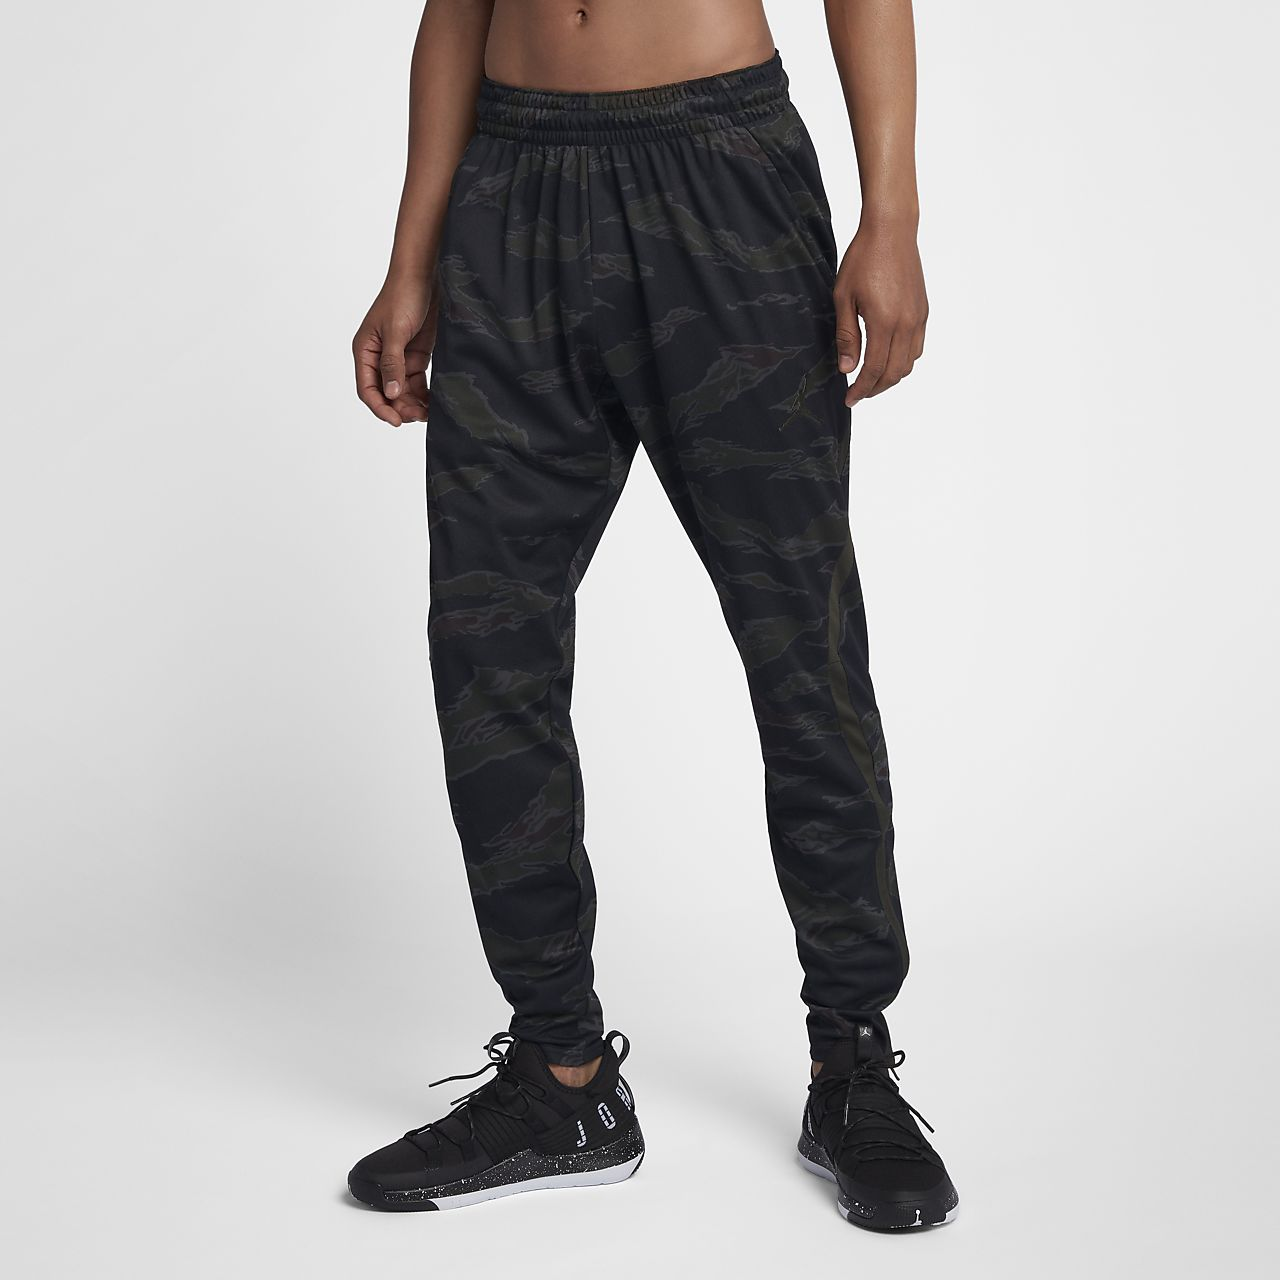 Jordan Dri-FIT 23 Alpha Men's Print Training Trousers